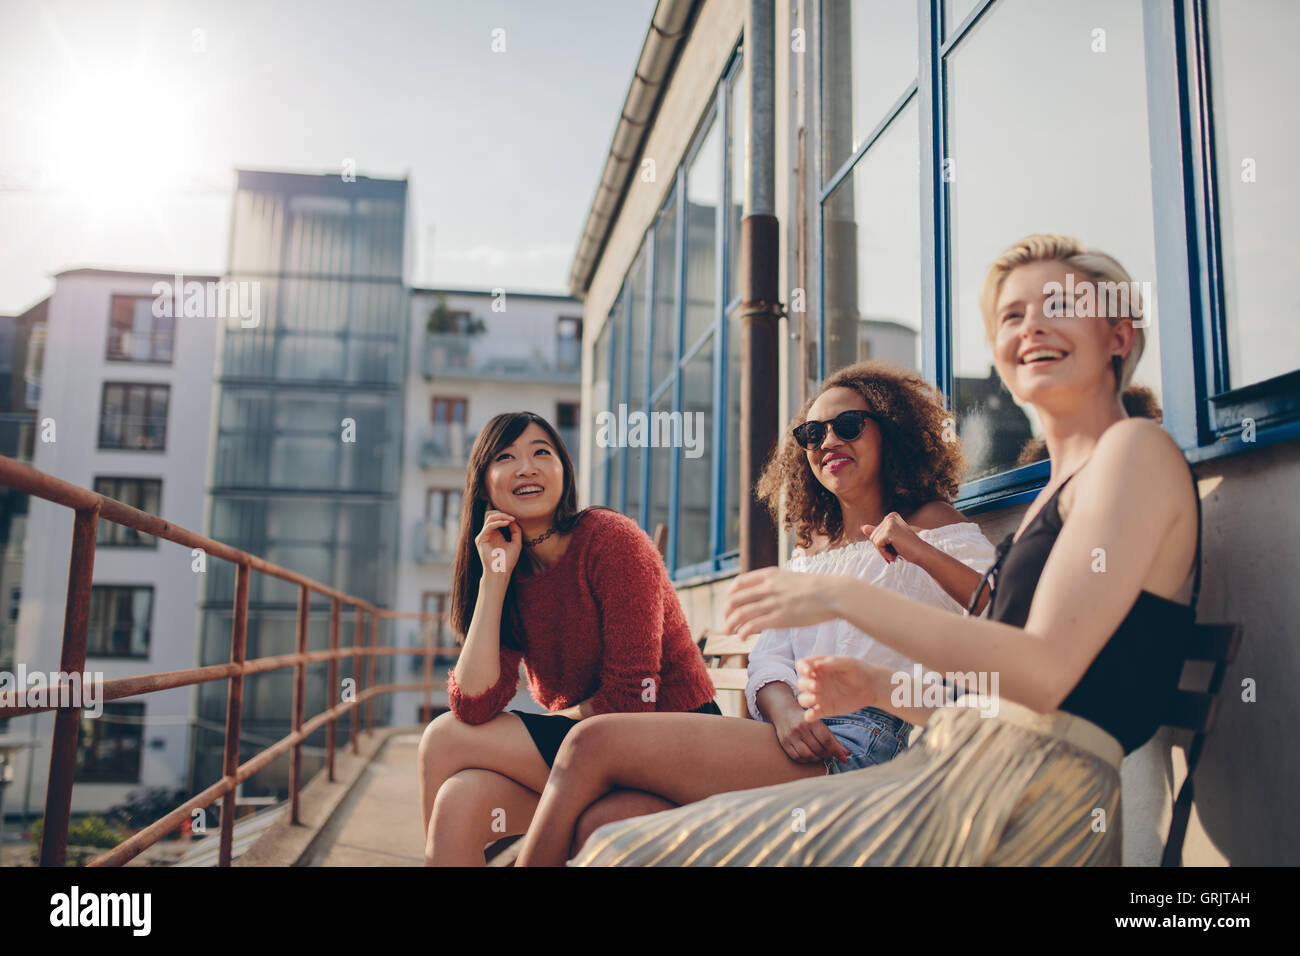 Happy three young female friends sitting in balcony and smiling. Women relaxing outdoors in terrace. - Stock Image